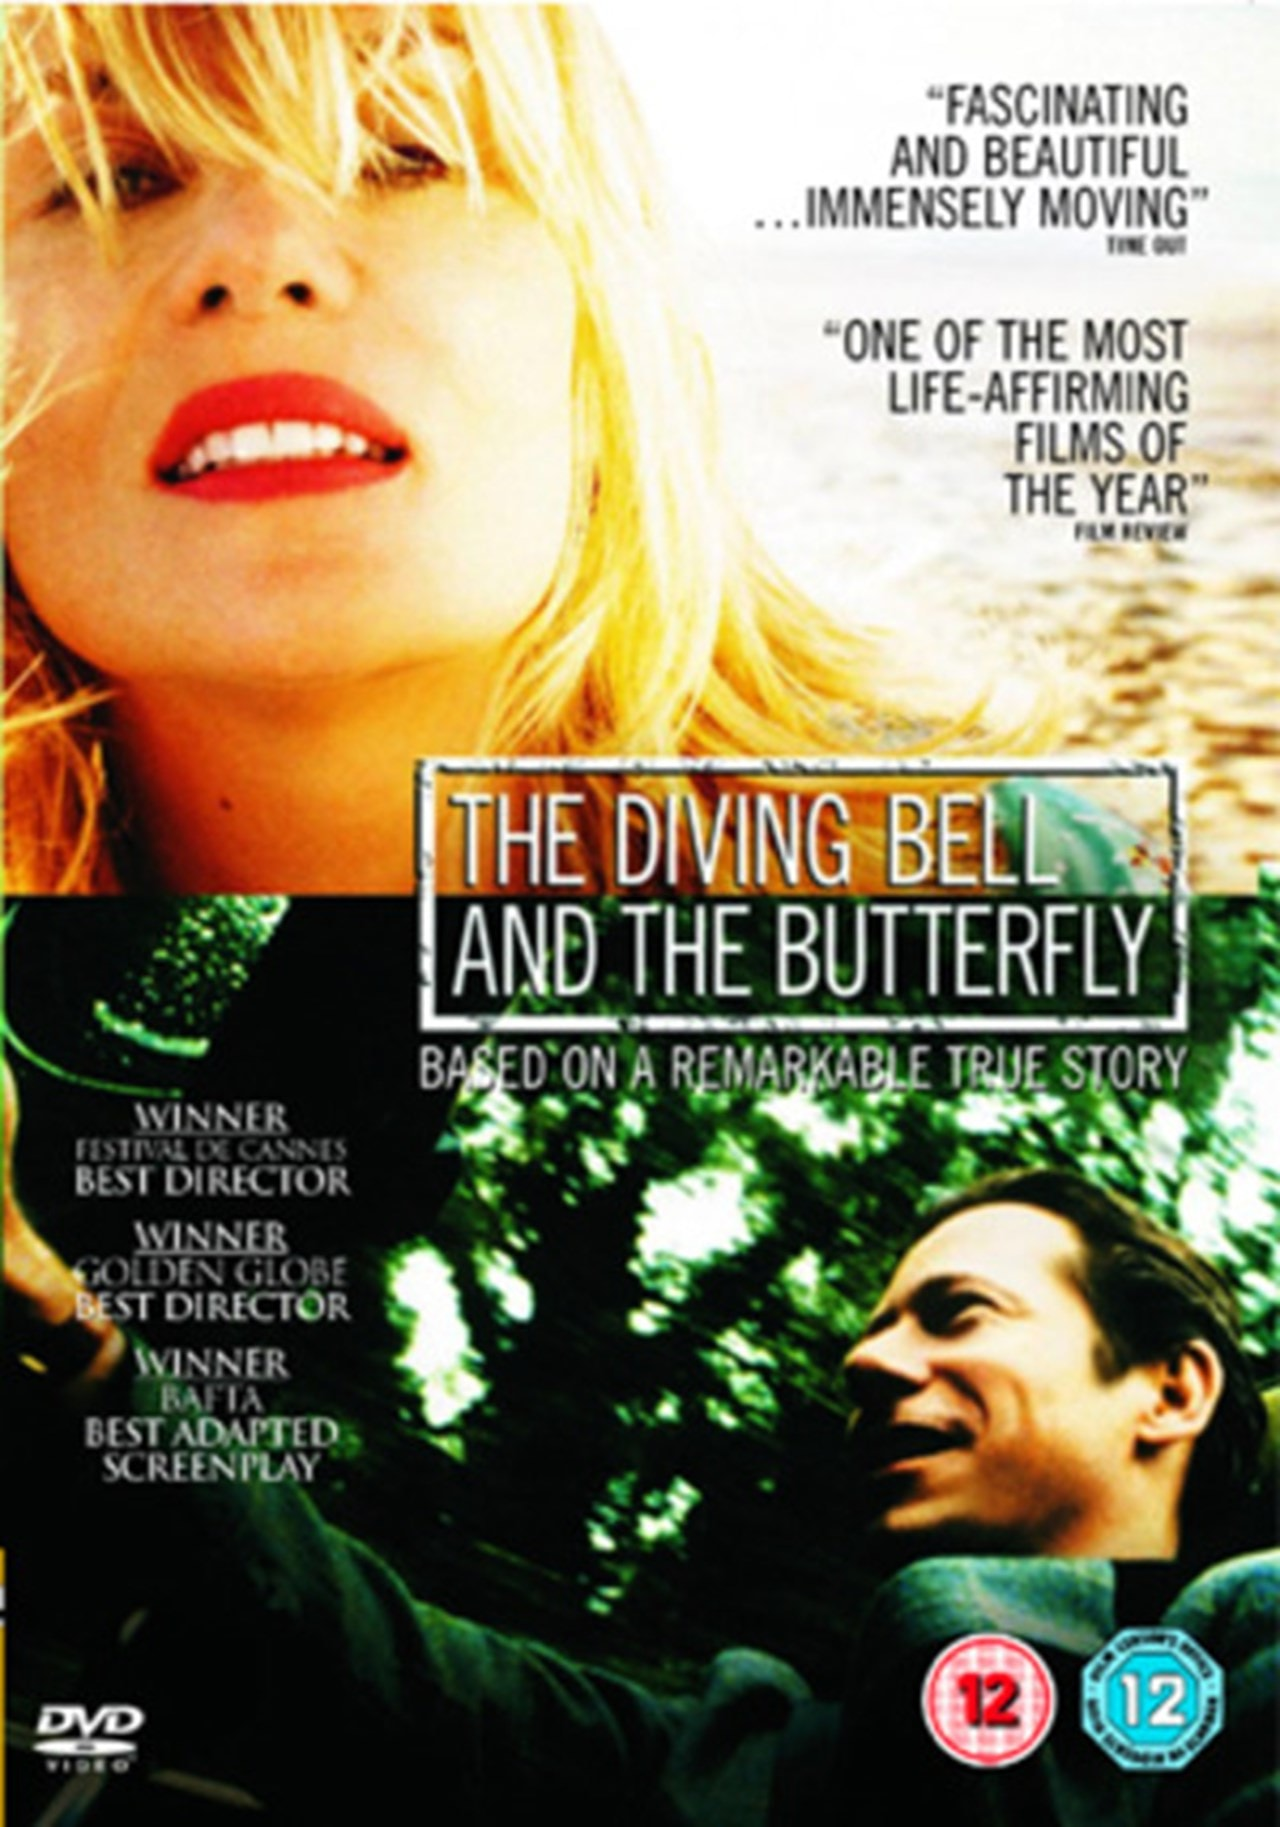 The Diving Bell and the Butterfly - 1